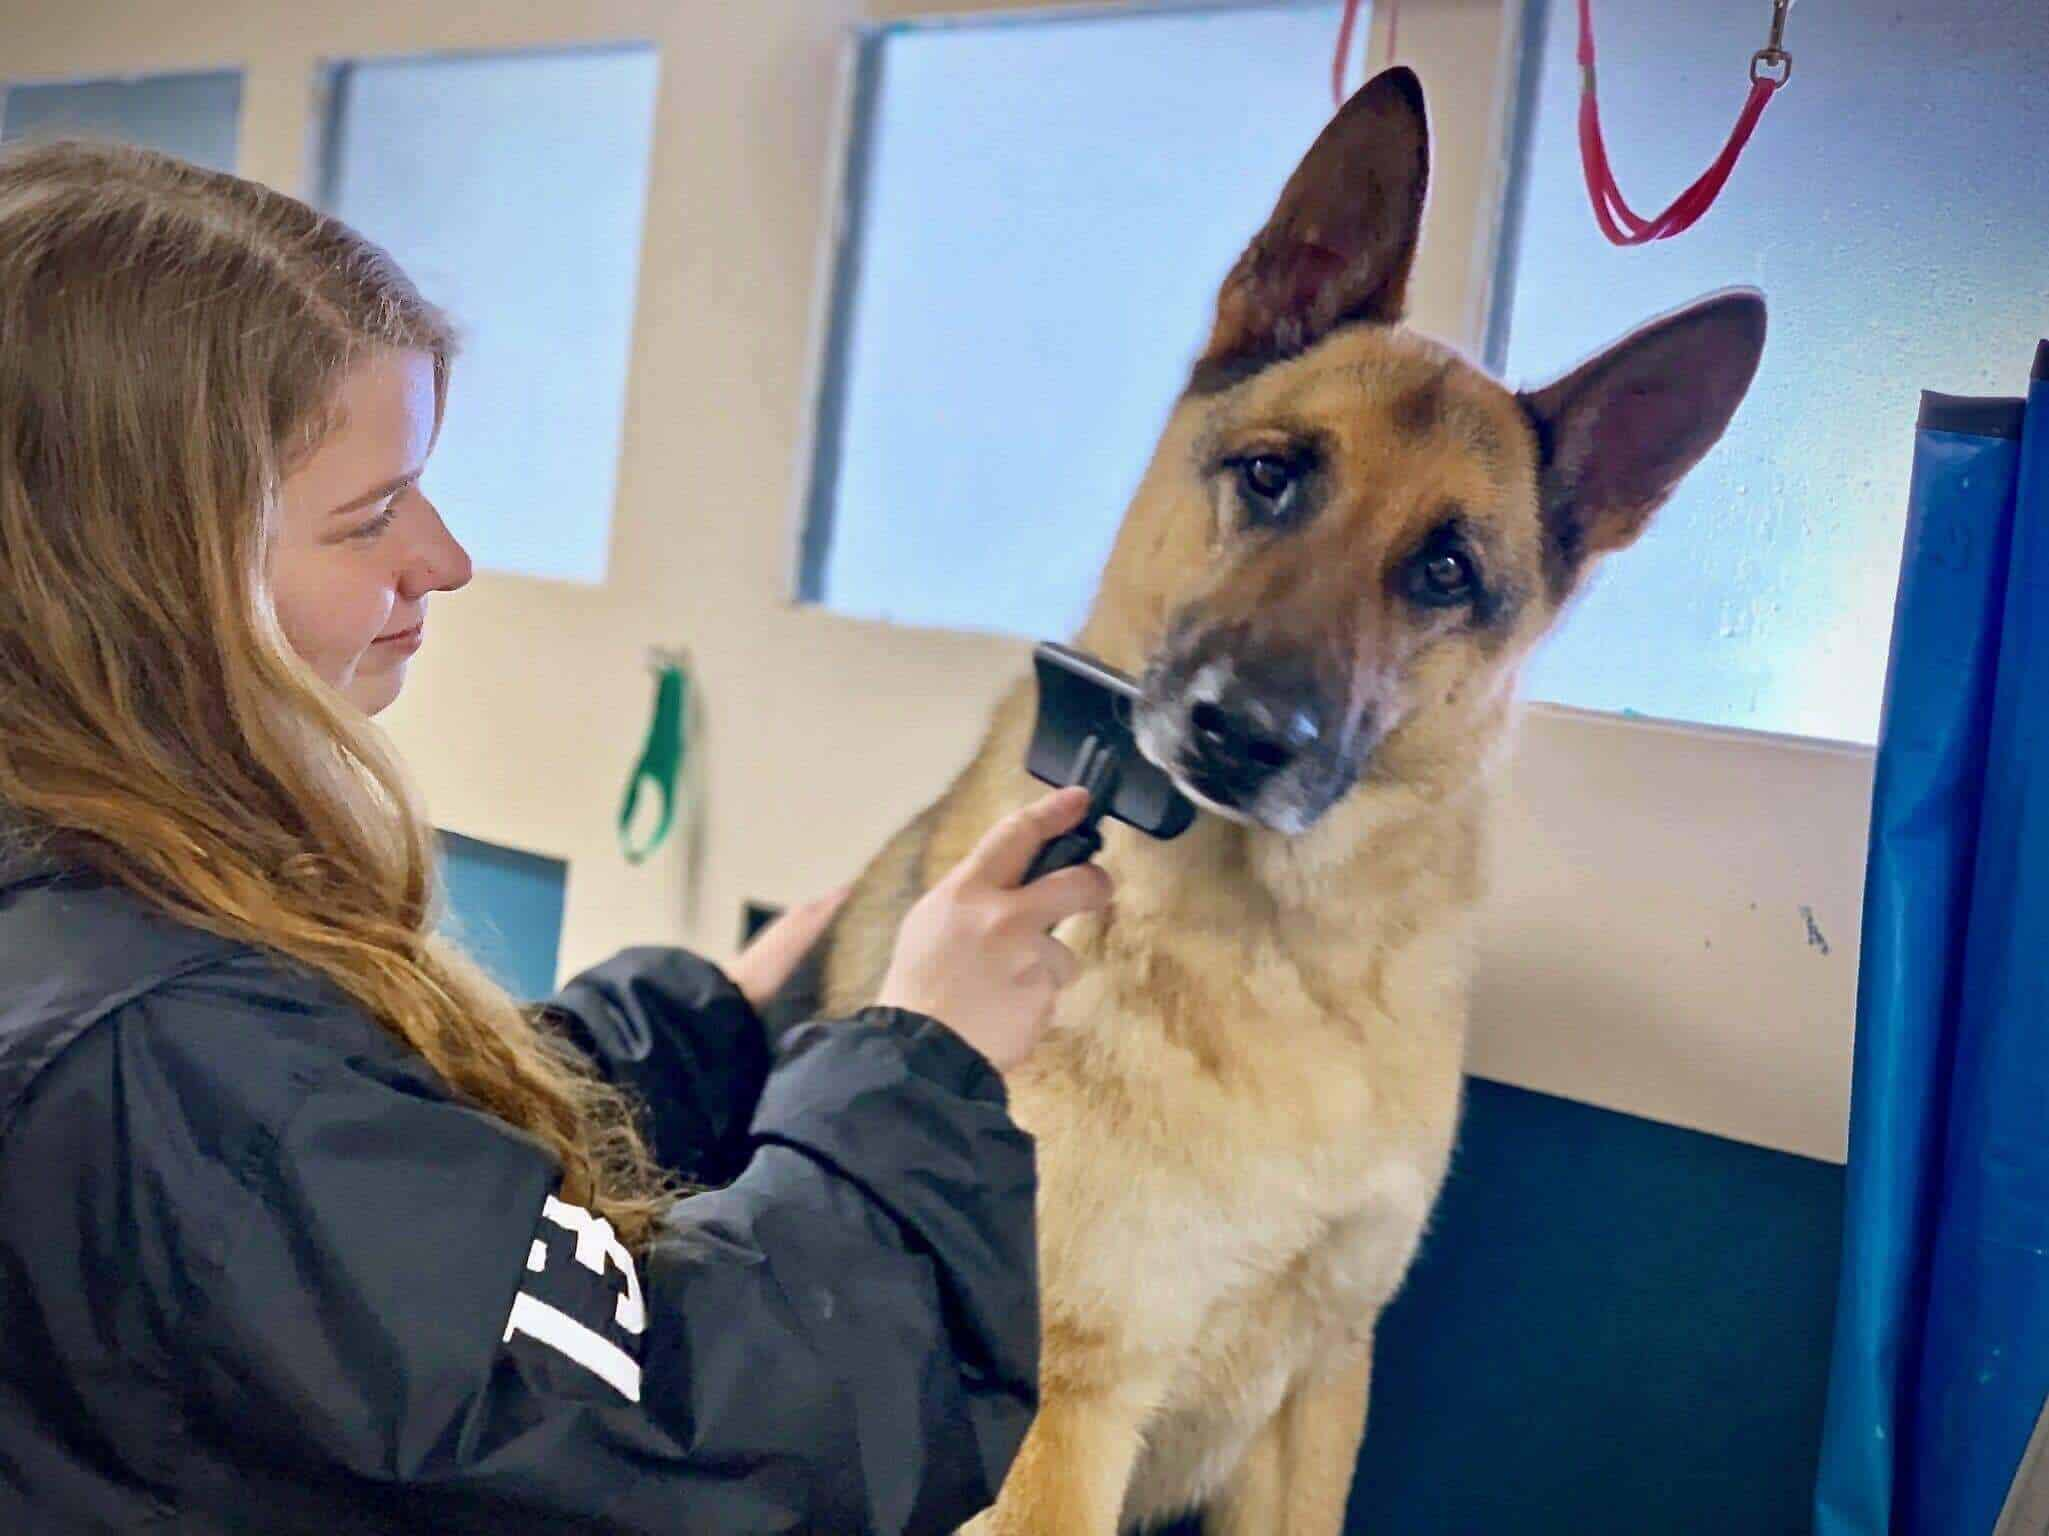 Kennel assistant Kimberly brushing a German Shepherd after a bath